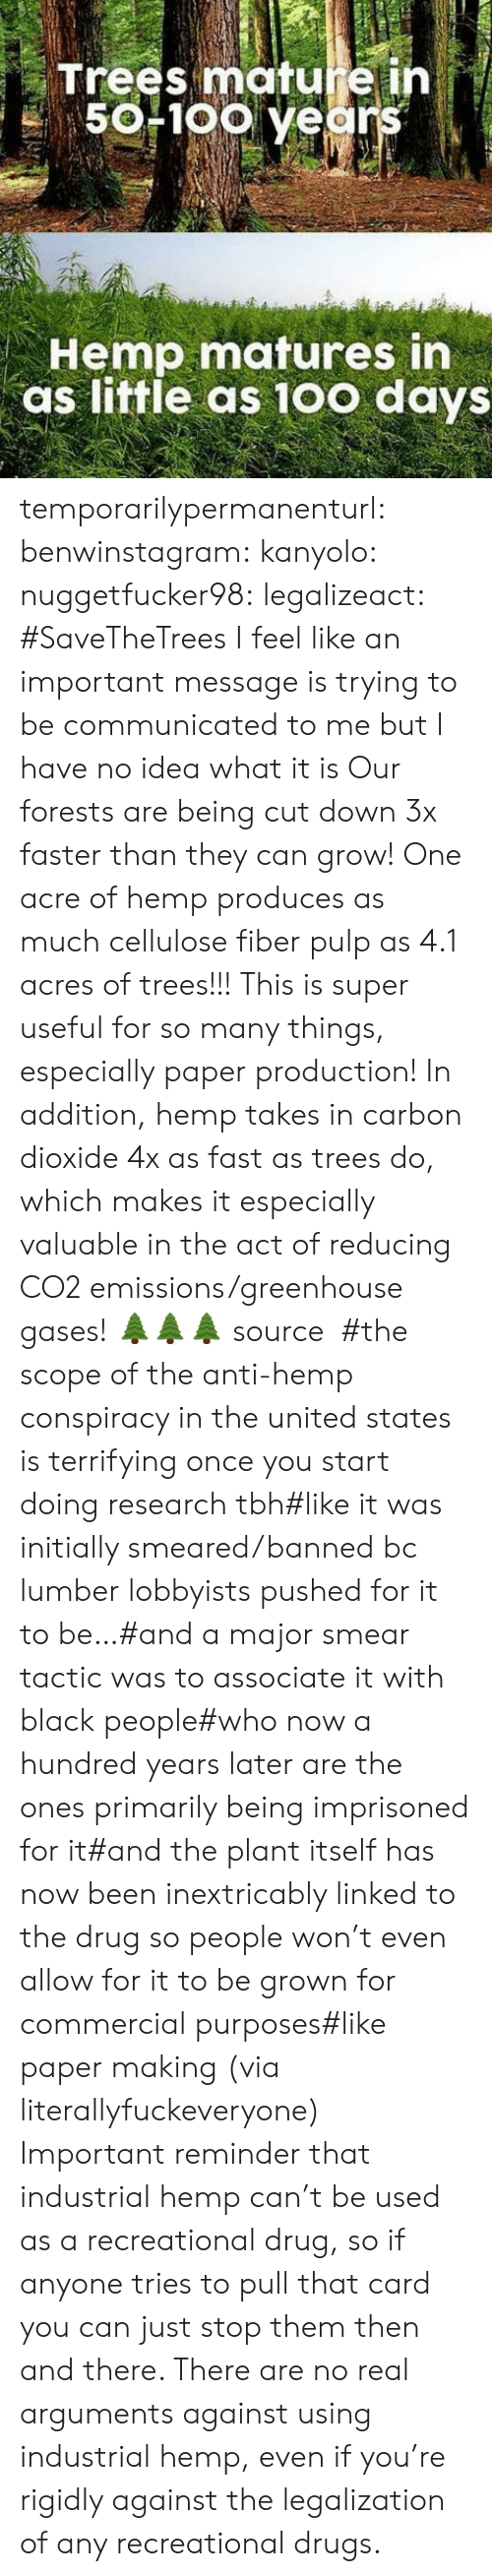 industrial: Trees mature ih  50F1oo years  Hemp matures in  as little as 10o days temporarilypermanenturl:  benwinstagram:  kanyolo:  nuggetfucker98:  legalizeact:  #SaveTheTrees  I feel like an important message is trying to be communicated to me but I have no idea what it is  Our forests are being cut down 3x faster than they can grow! One acre of hemp produces as much cellulose fiber pulp as 4.1 acres of trees!!! This is super useful for so many things, especially paper production! In addition, hemp takes in carbon dioxide 4x as fast as trees do, which makes it especially valuable in the act of reducing CO2 emissions/greenhouse gases! 🌲🌲🌲source  #the scope of the anti-hemp conspiracy in the united states is terrifying once you start doing research tbh#like it was initially smeared/banned bc lumber lobbyists pushed for it to be…#and a major smear tactic was to associate it with black people#who now a hundred years later are the ones primarily being imprisoned for it#and the plant itself has now been inextricably linked to the drug so people won't even allow for it to be grown for commercial purposes#like paper making(via literallyfuckeveryone)   Important reminder that industrial hemp can't be used as a recreational drug, so if anyone tries to pull that card you can just stop them then and there. There are no real arguments against using industrial hemp, even if you're rigidly against the legalization of any recreational drugs.